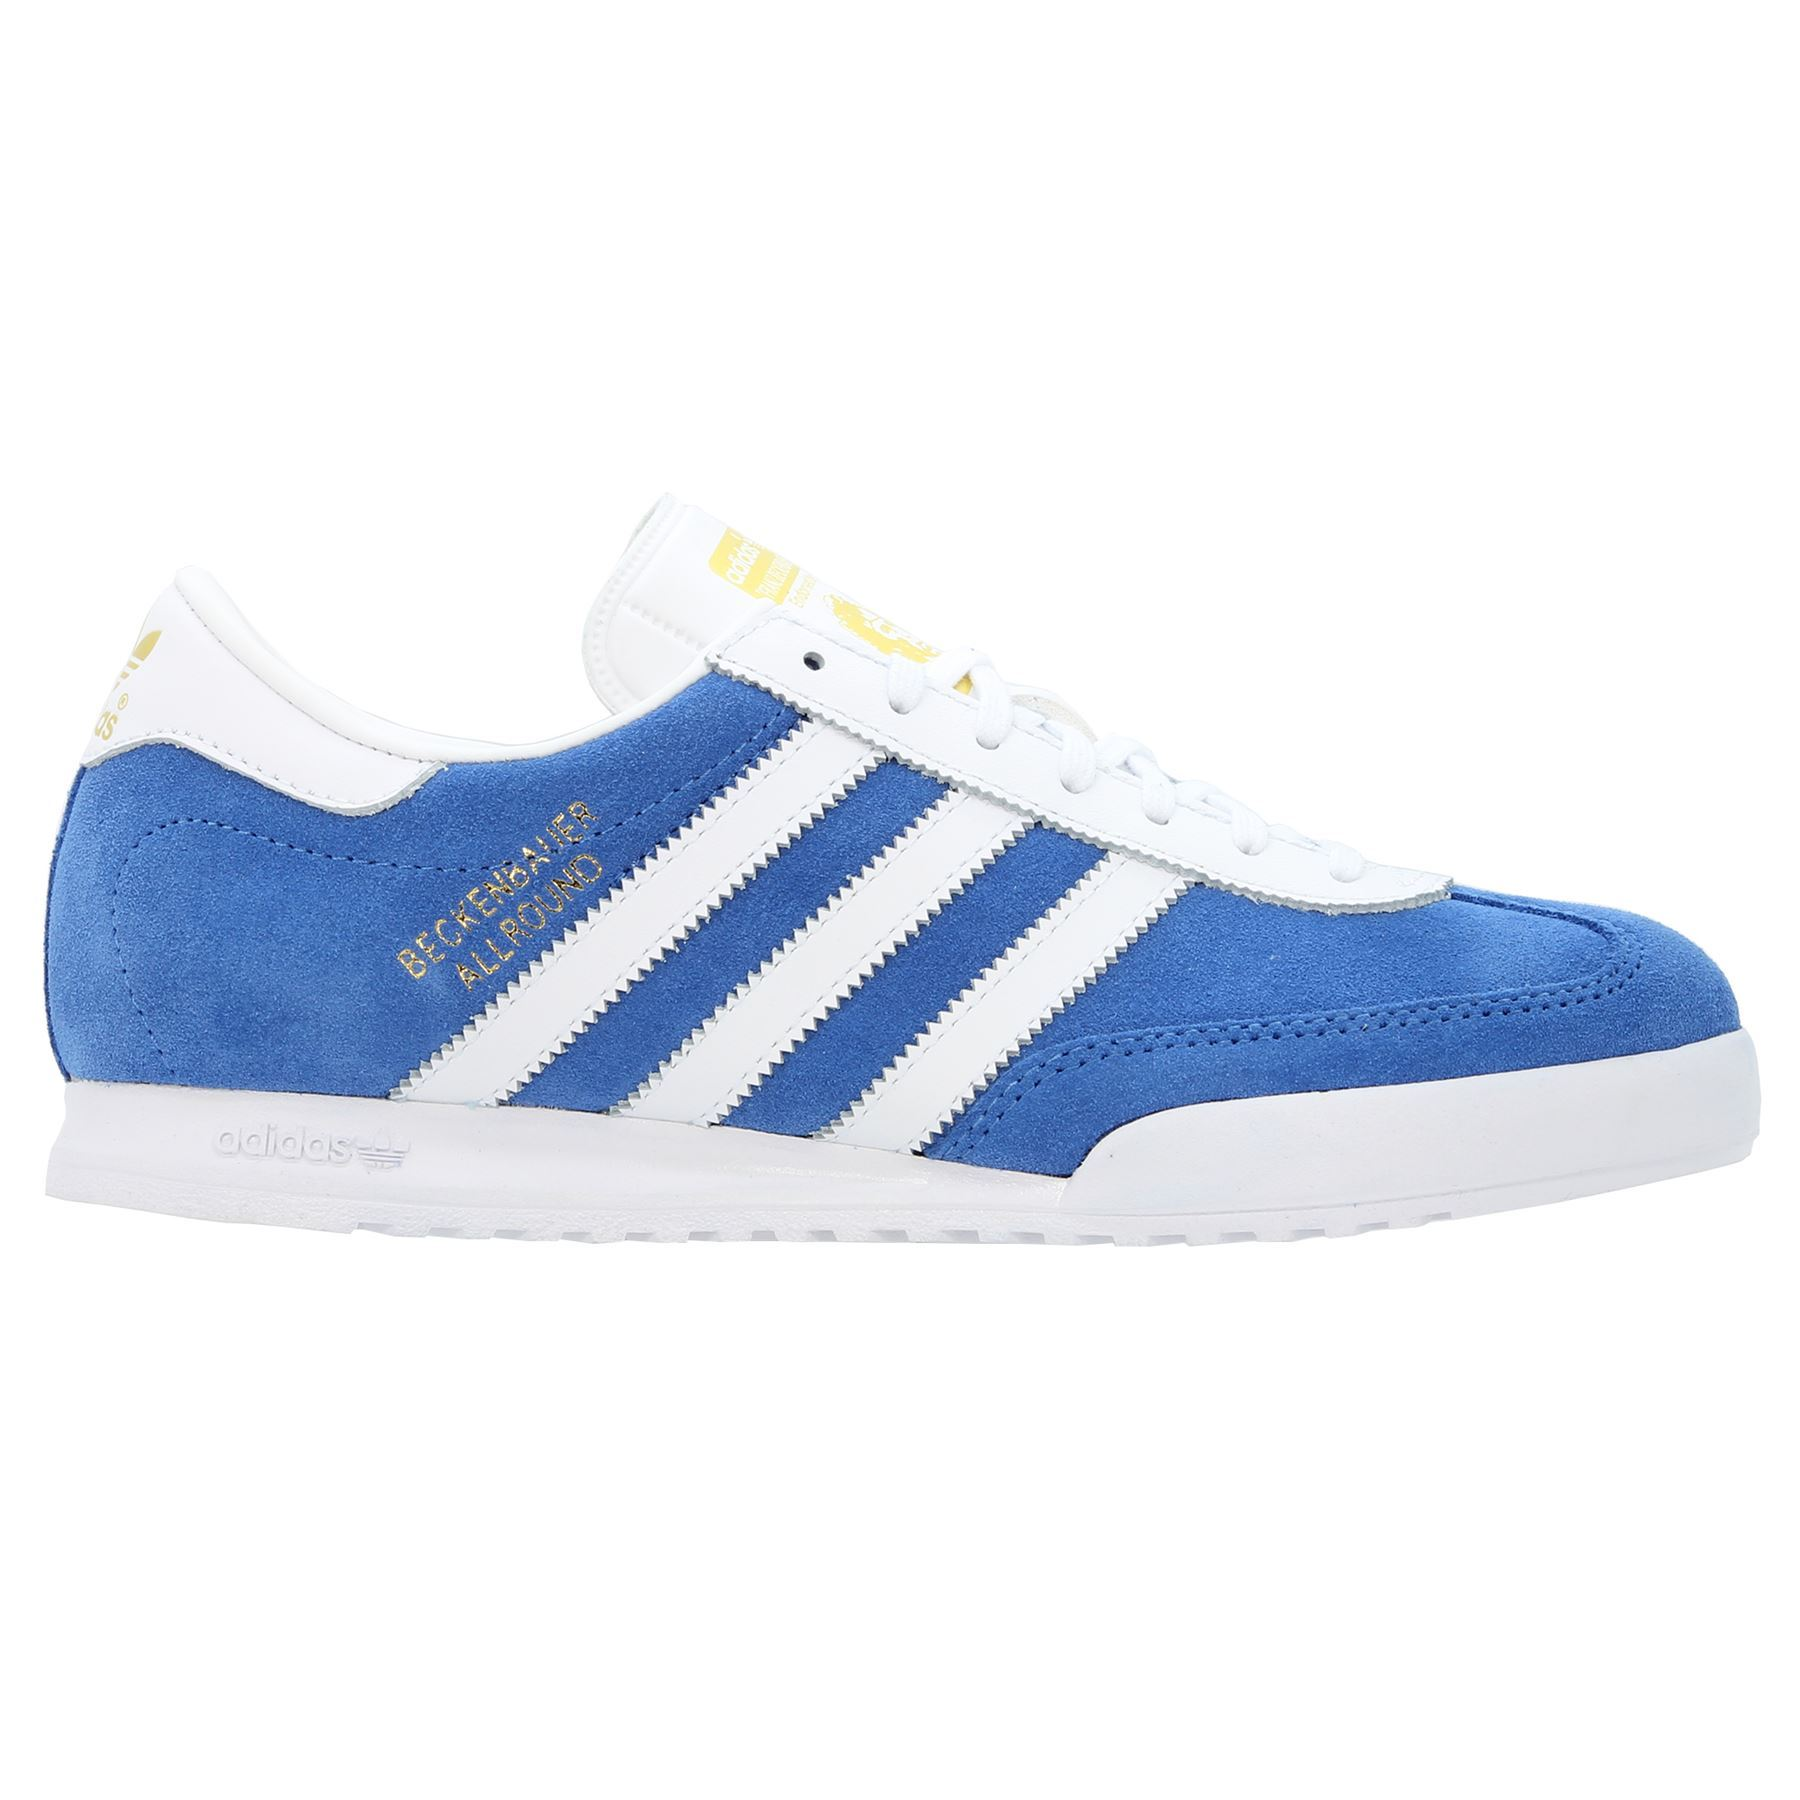 adidas ORIGINALS MEN/'S BEACKENBAUER ALL ROUND TRAINERS SHOES RETRO BLUE BROWN